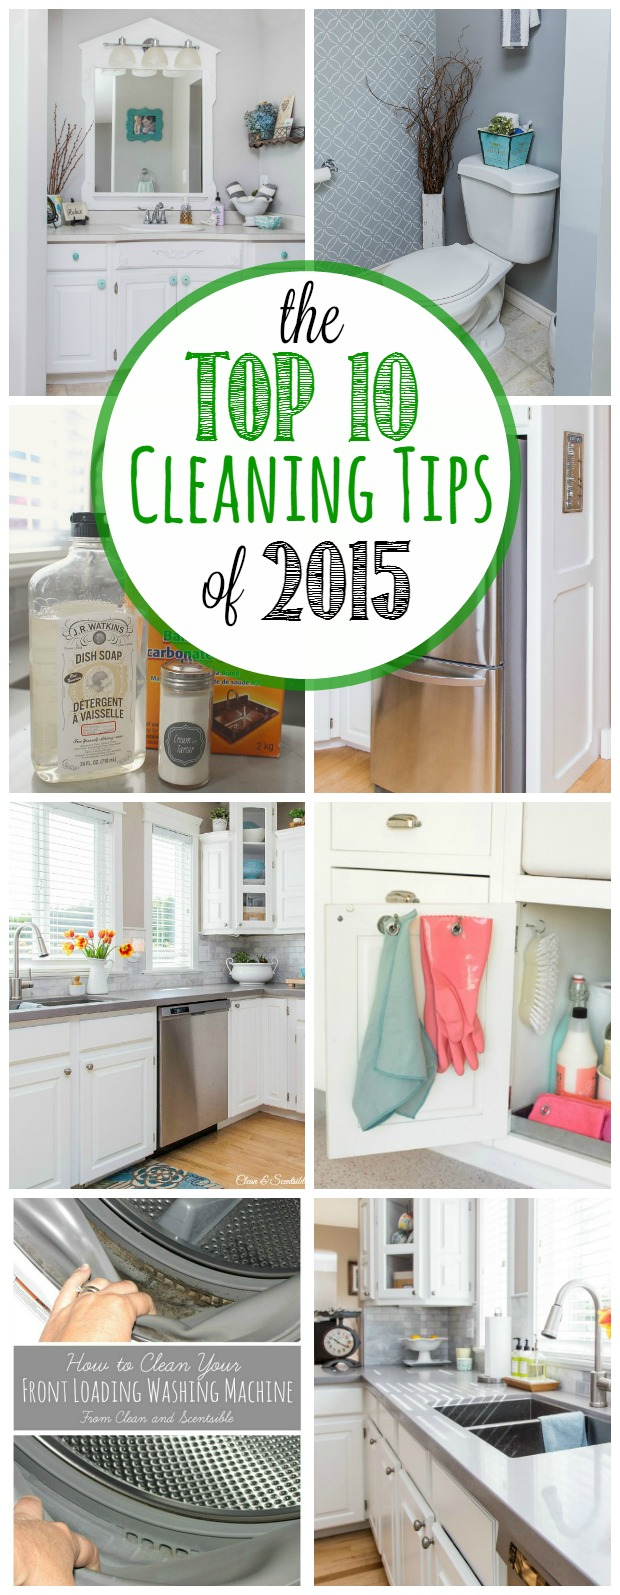 The Best Cleaning Tips of 2015